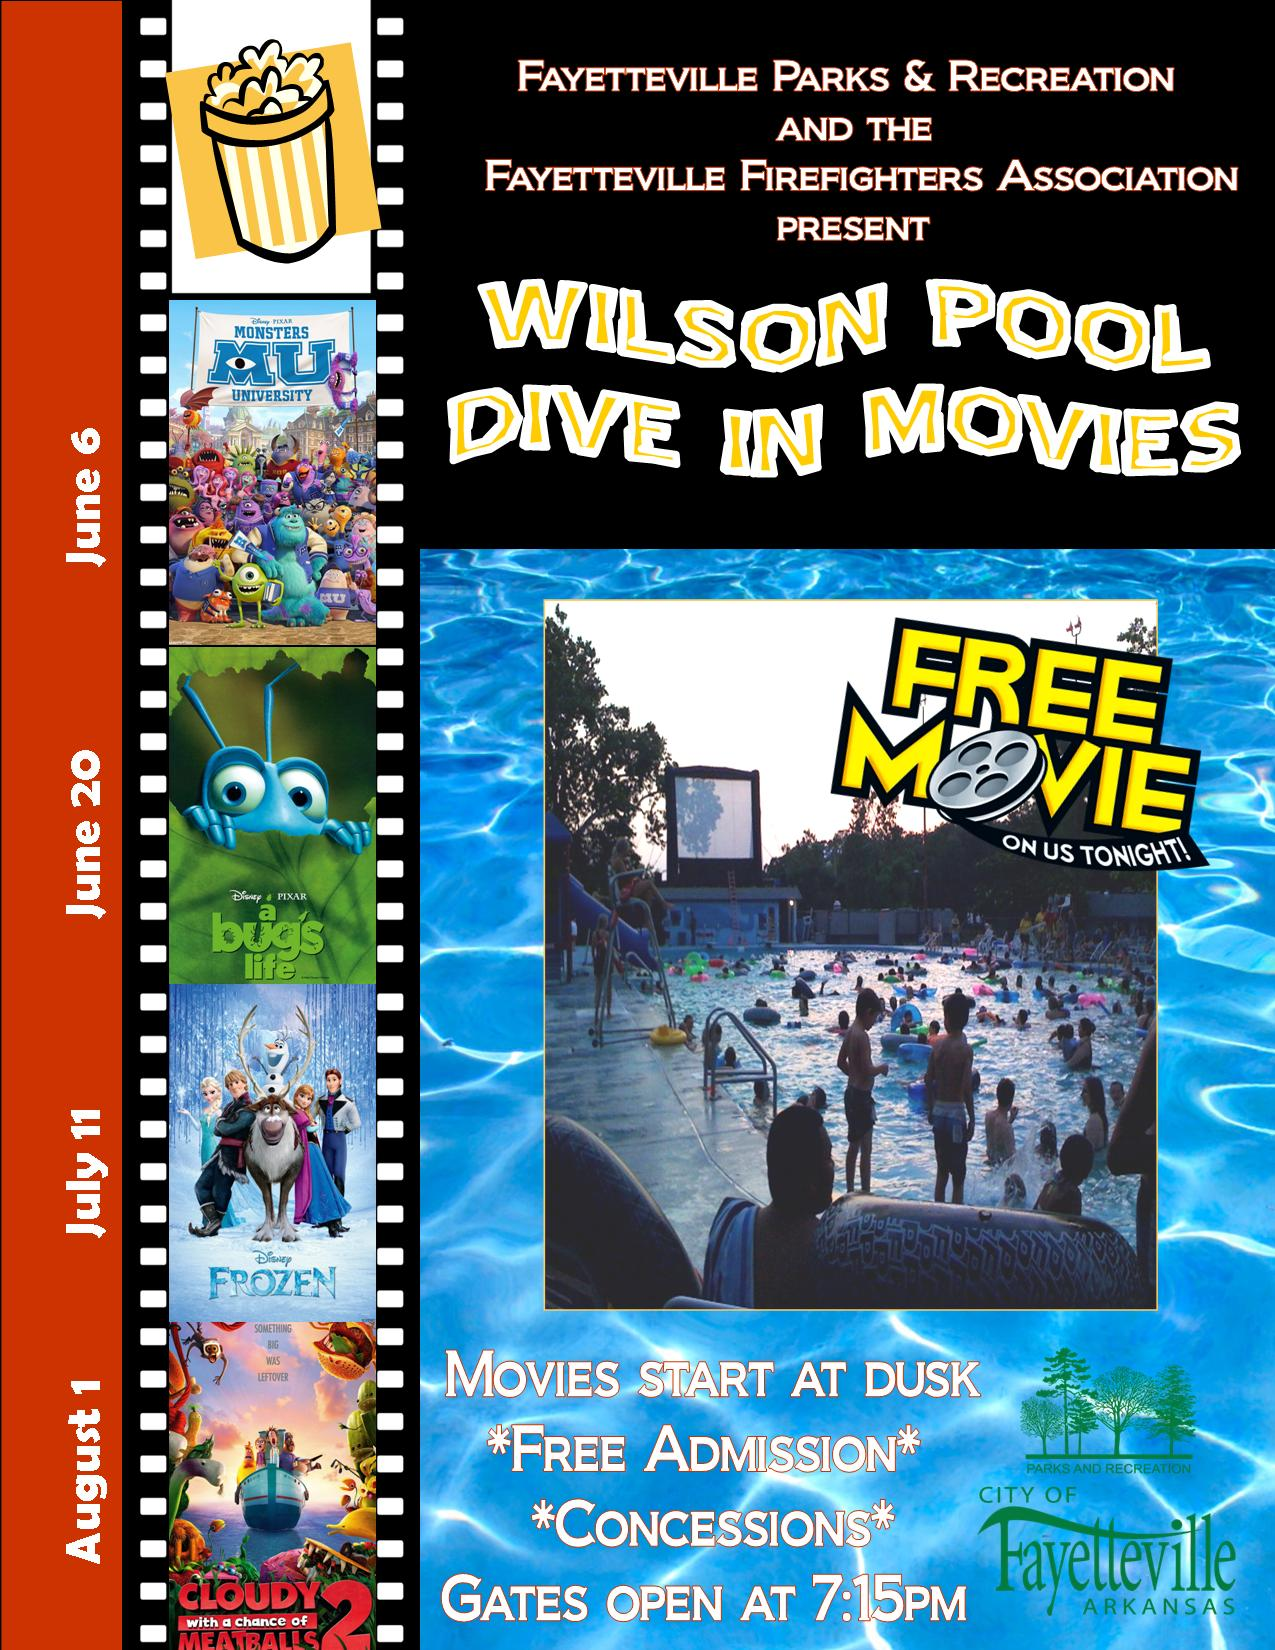 Wilson park pool to open june 6 with first dive in movie fayetteville flyer - Dive in movie ...